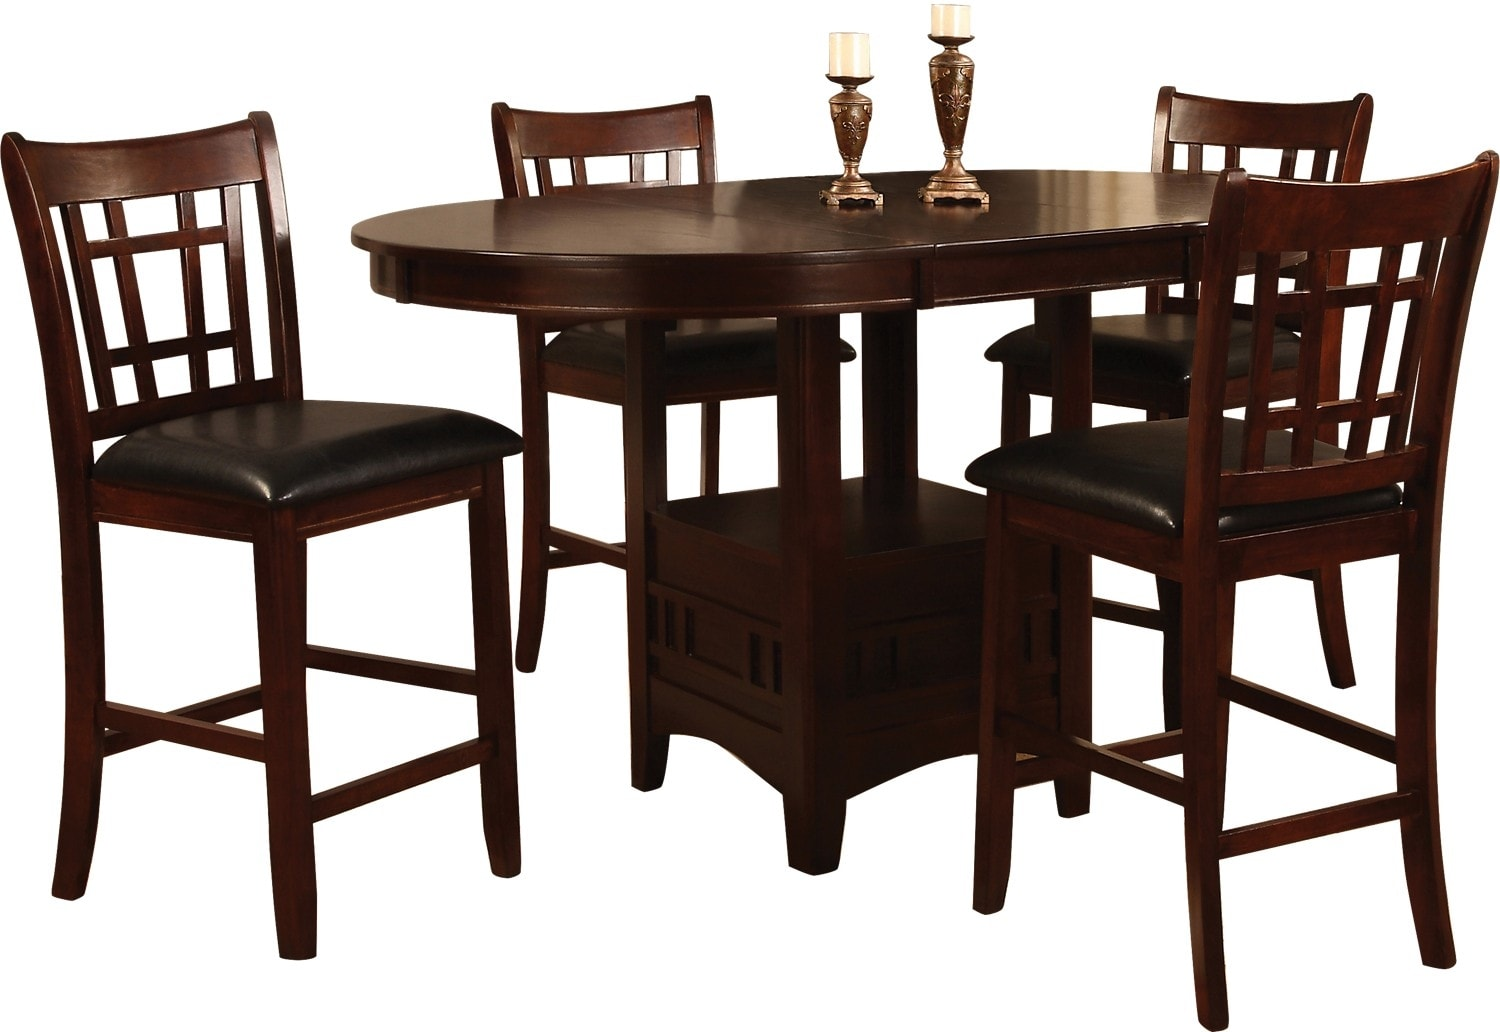 Counter Height Dining Room Chairs Dalton 5 Piece Chocolate Counter Height Dining Package